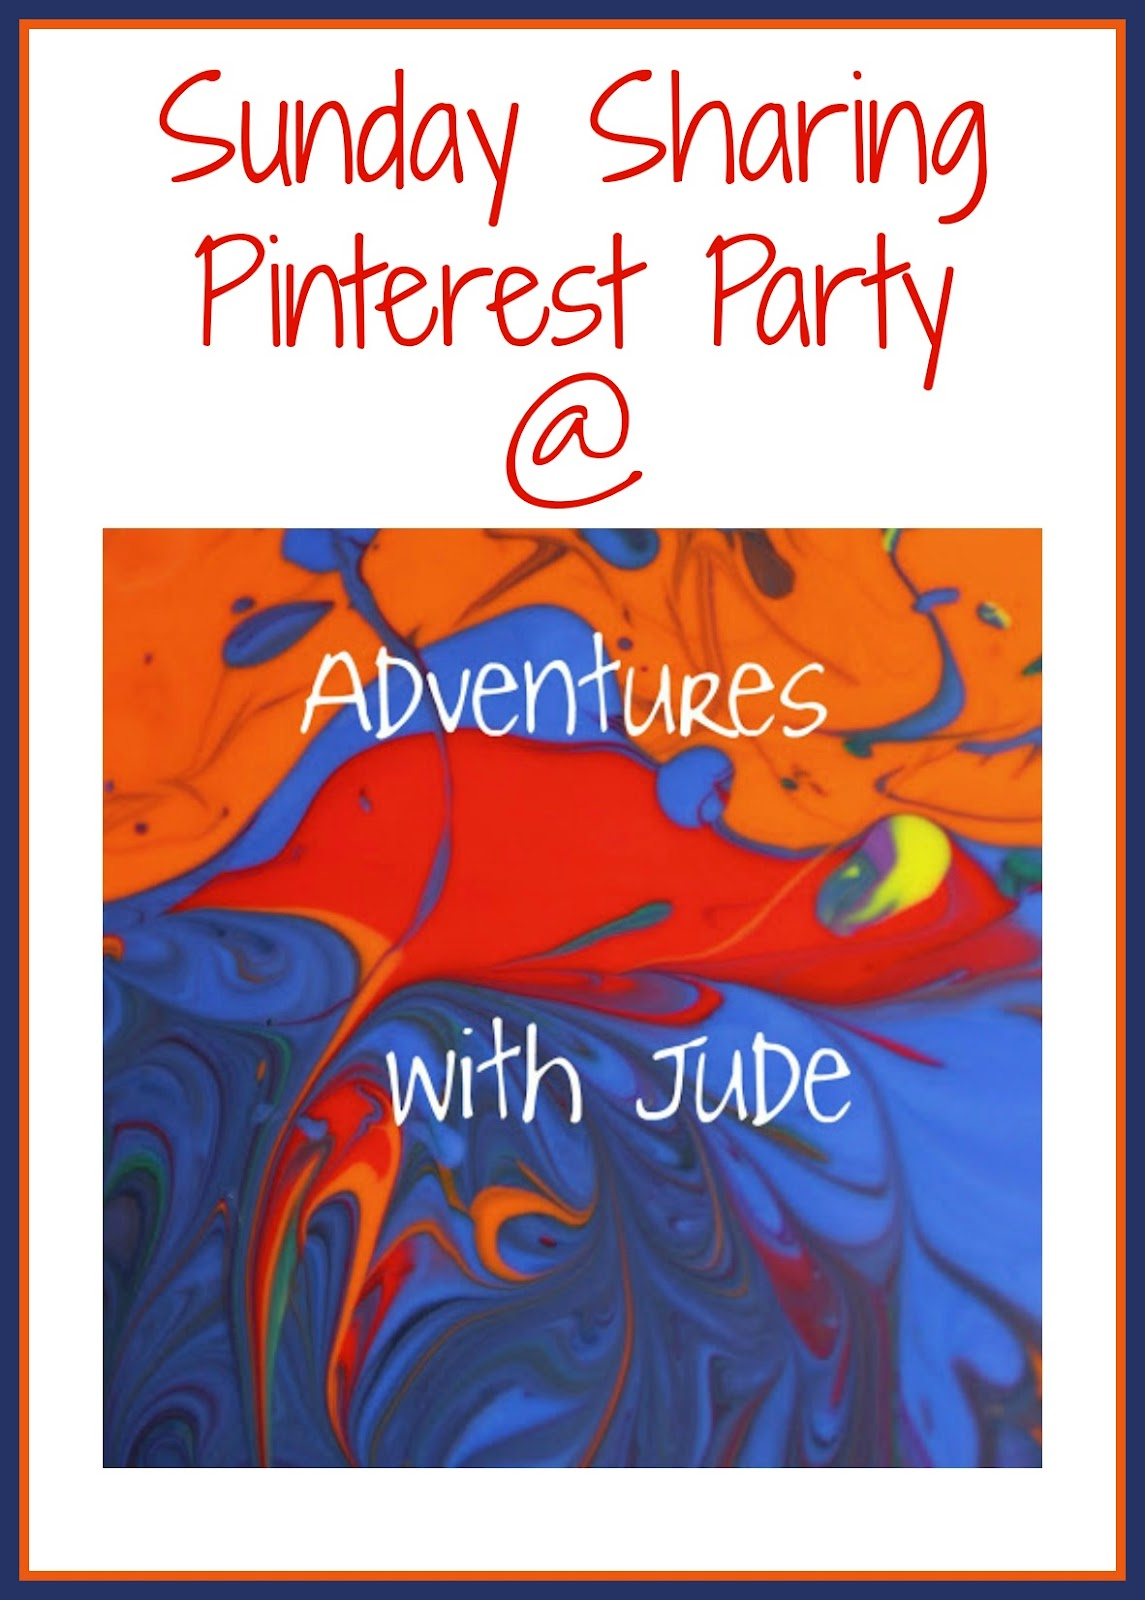 Sunday Sharing Pinterest Party at Adventures with Jude